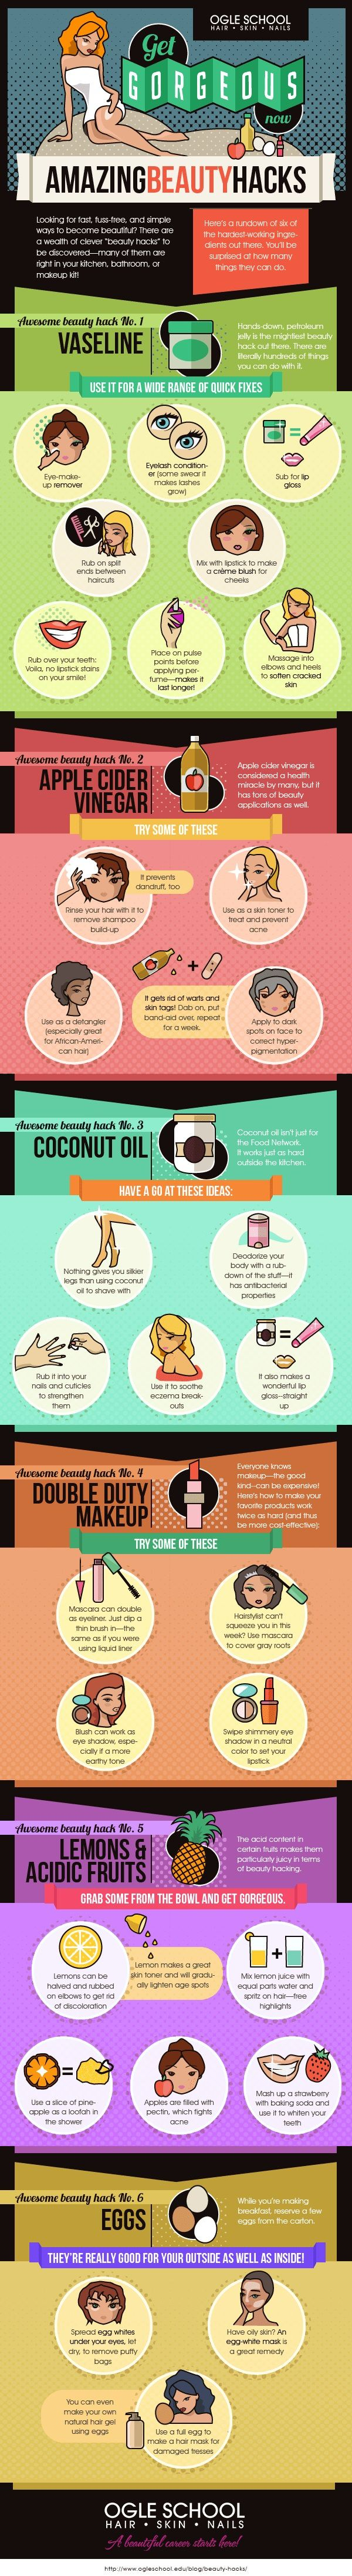 Best of Home and Garden: 10 Awesome Lists for Hair Care Tips